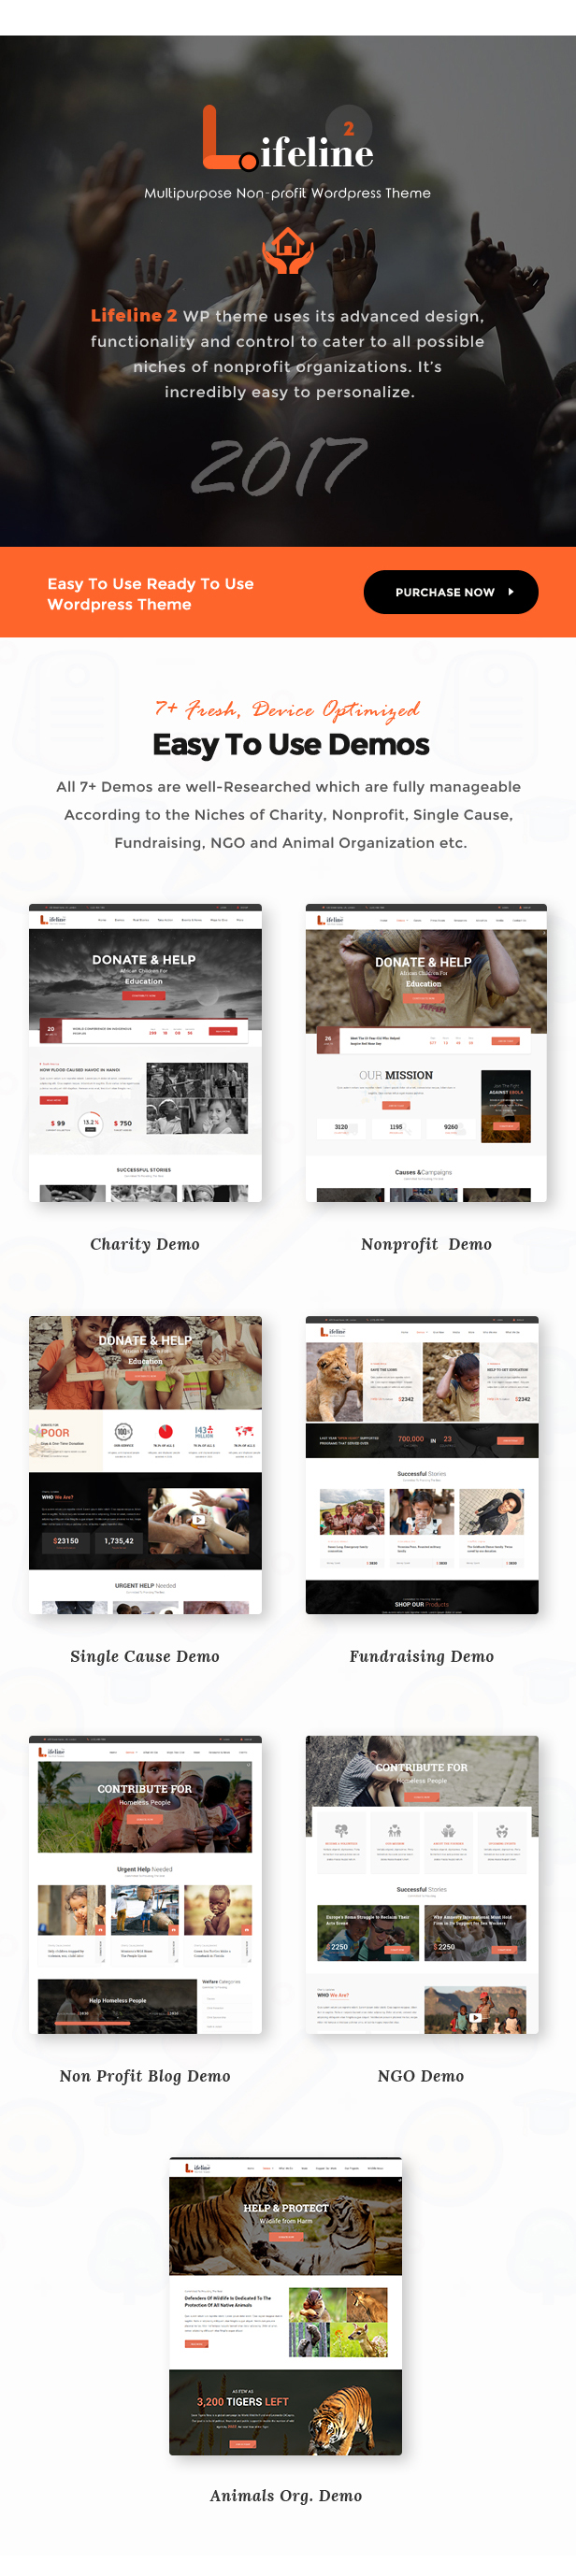 Lifeline 2 - An Ultimate Nonprofit WordPress Theme for Charity, Fundraising and NGO Organizations